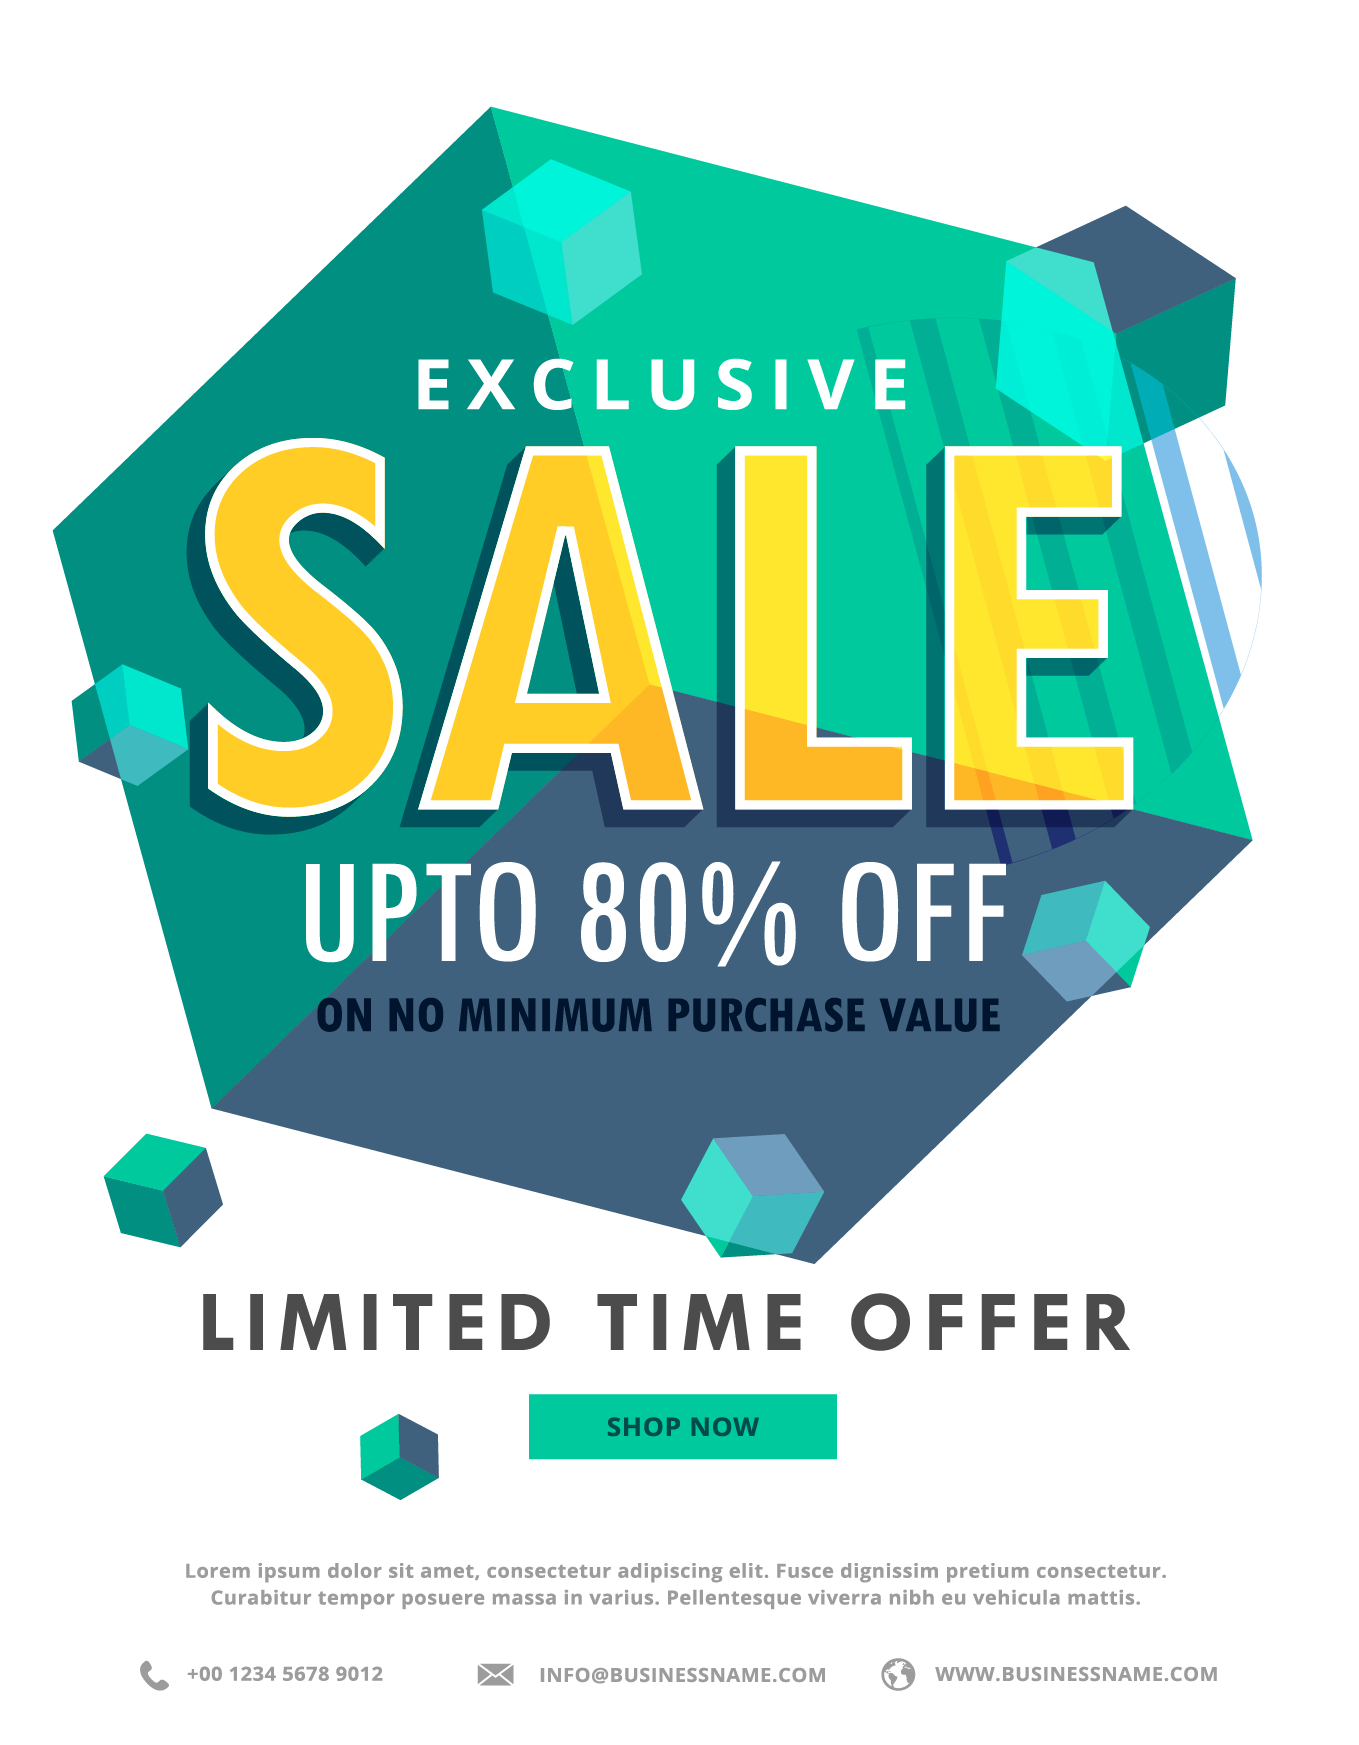 Poster Illustration Royalty-Free Discount Emerald Hexagonal PNG Image